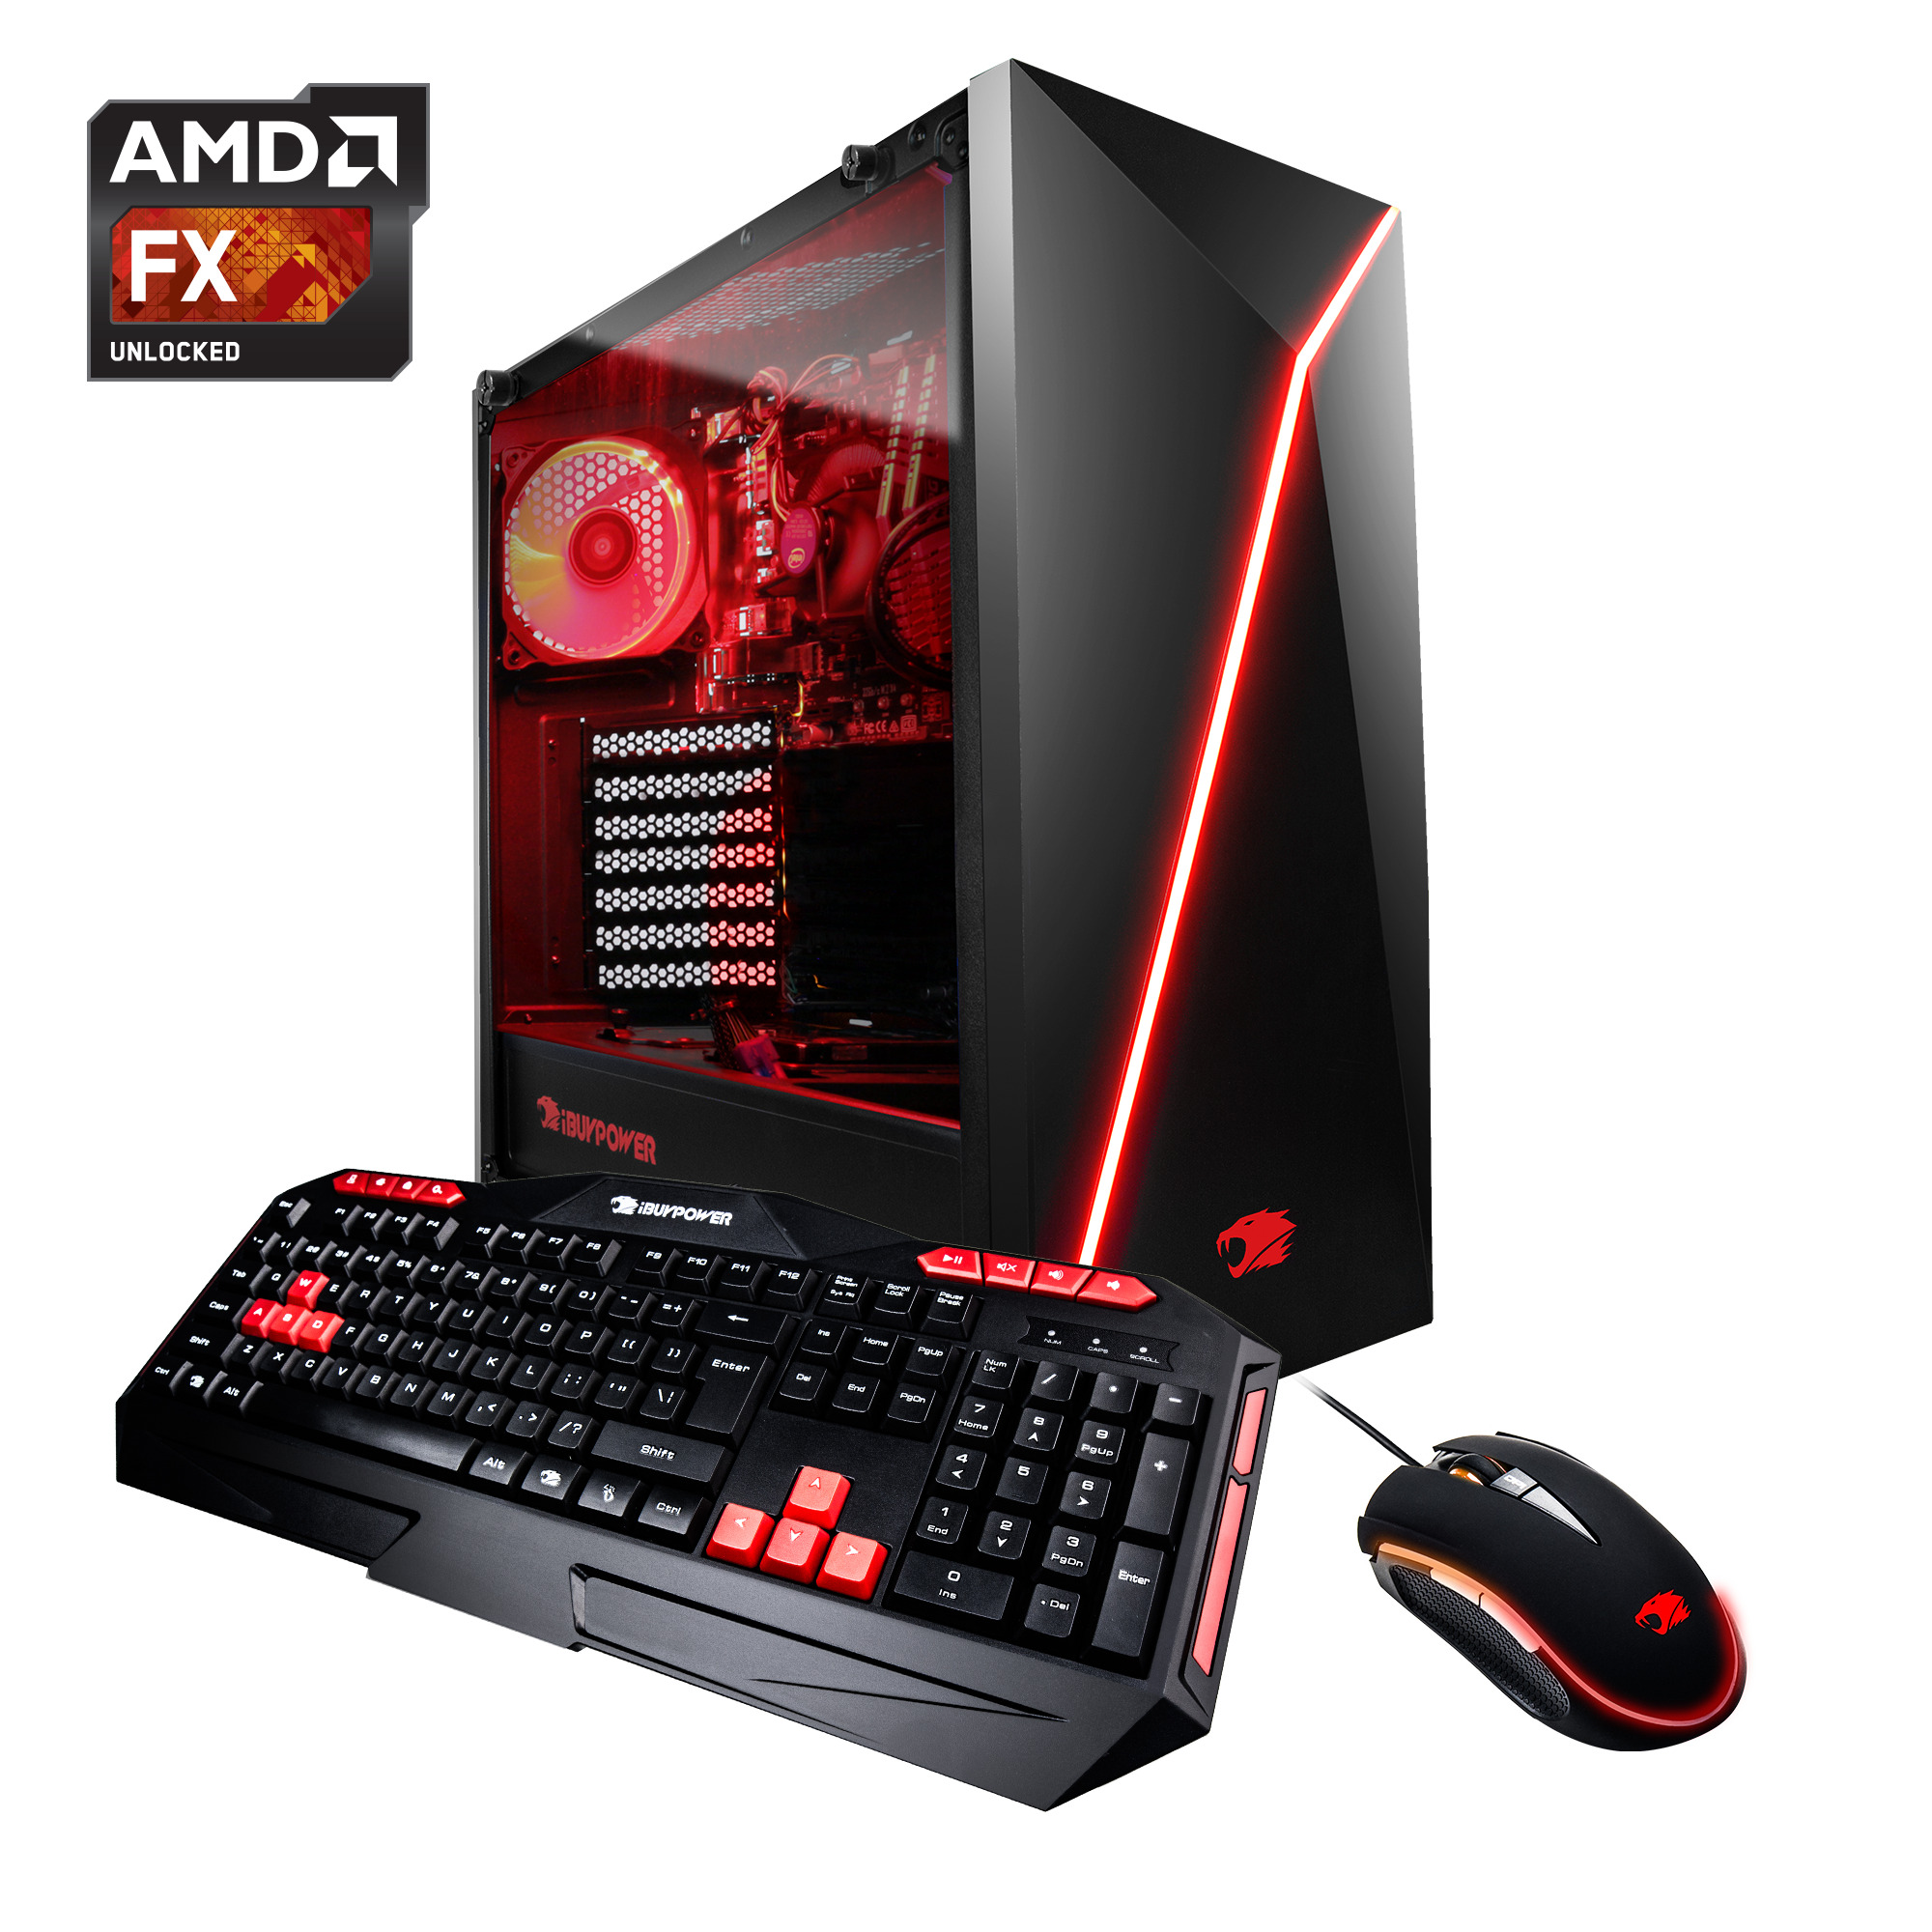 iBUYPOWER WA563GT2 Gaming Desktop PC With AMD FX-6300, GT1030 2GB, 1TB HDD, 8GB DDR3, and Window 10 Home (Monitor Not Included)